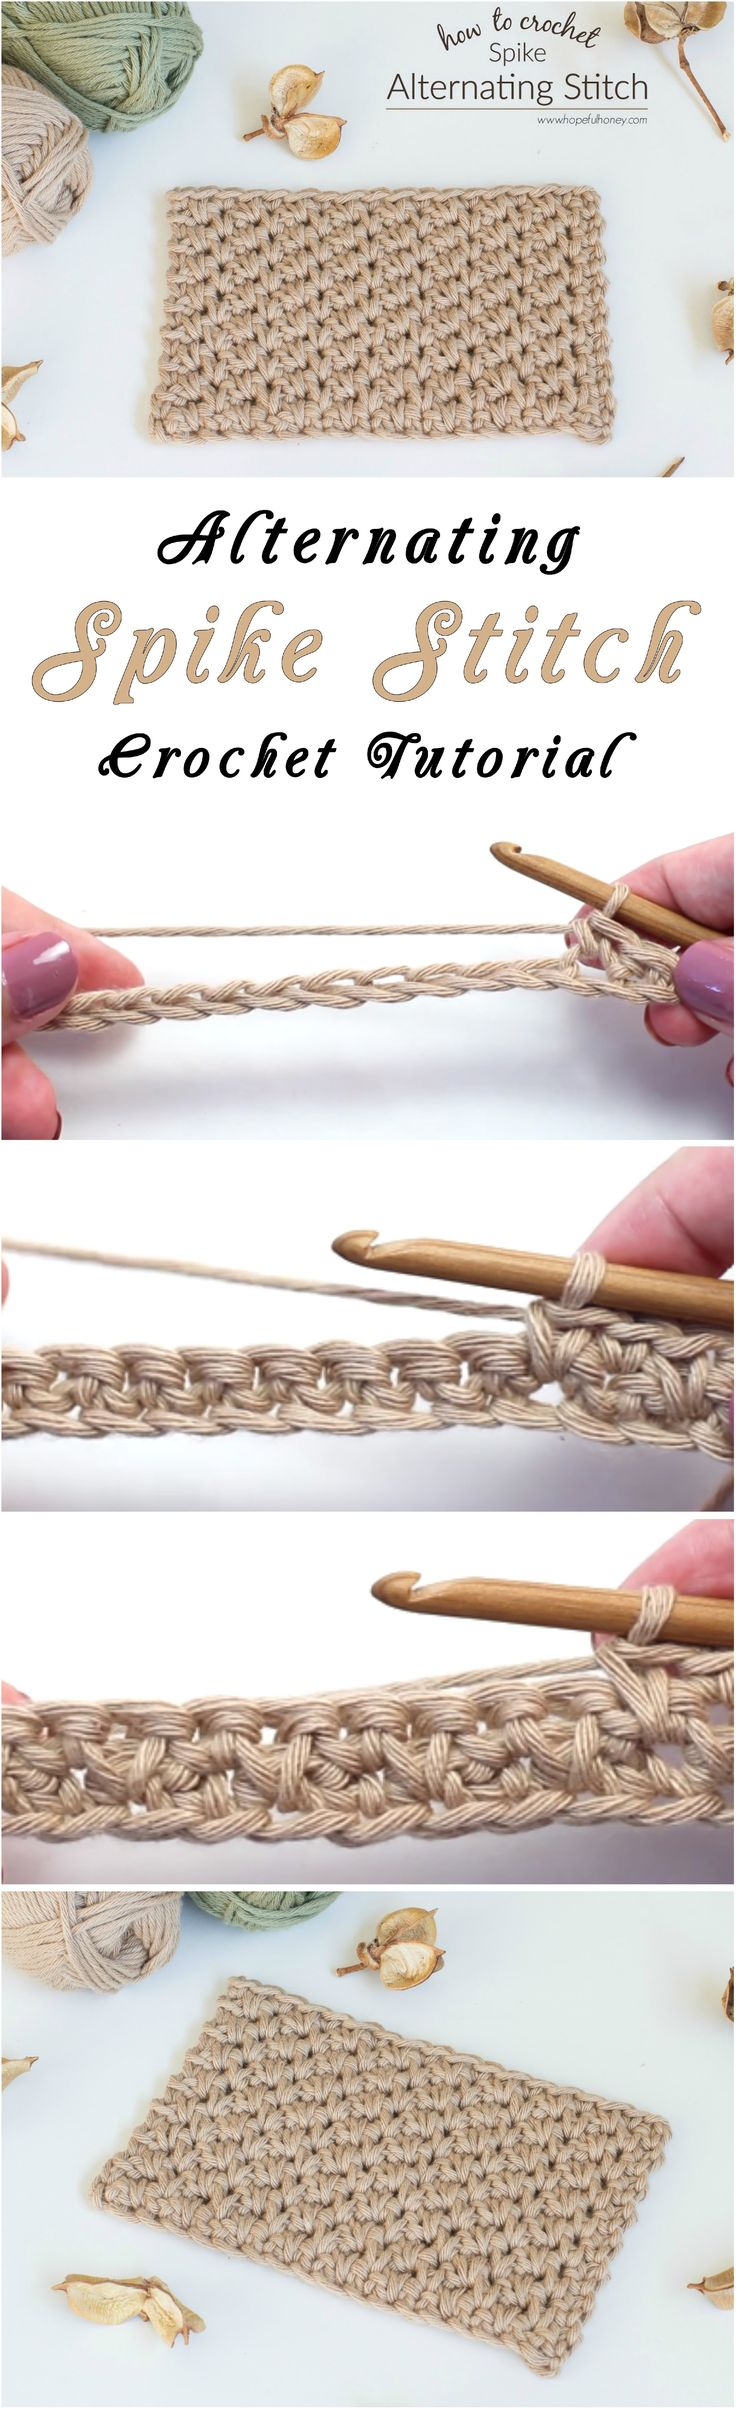 Alternating Spike Stitch Crochet Tutorial – Yarn & Hooks